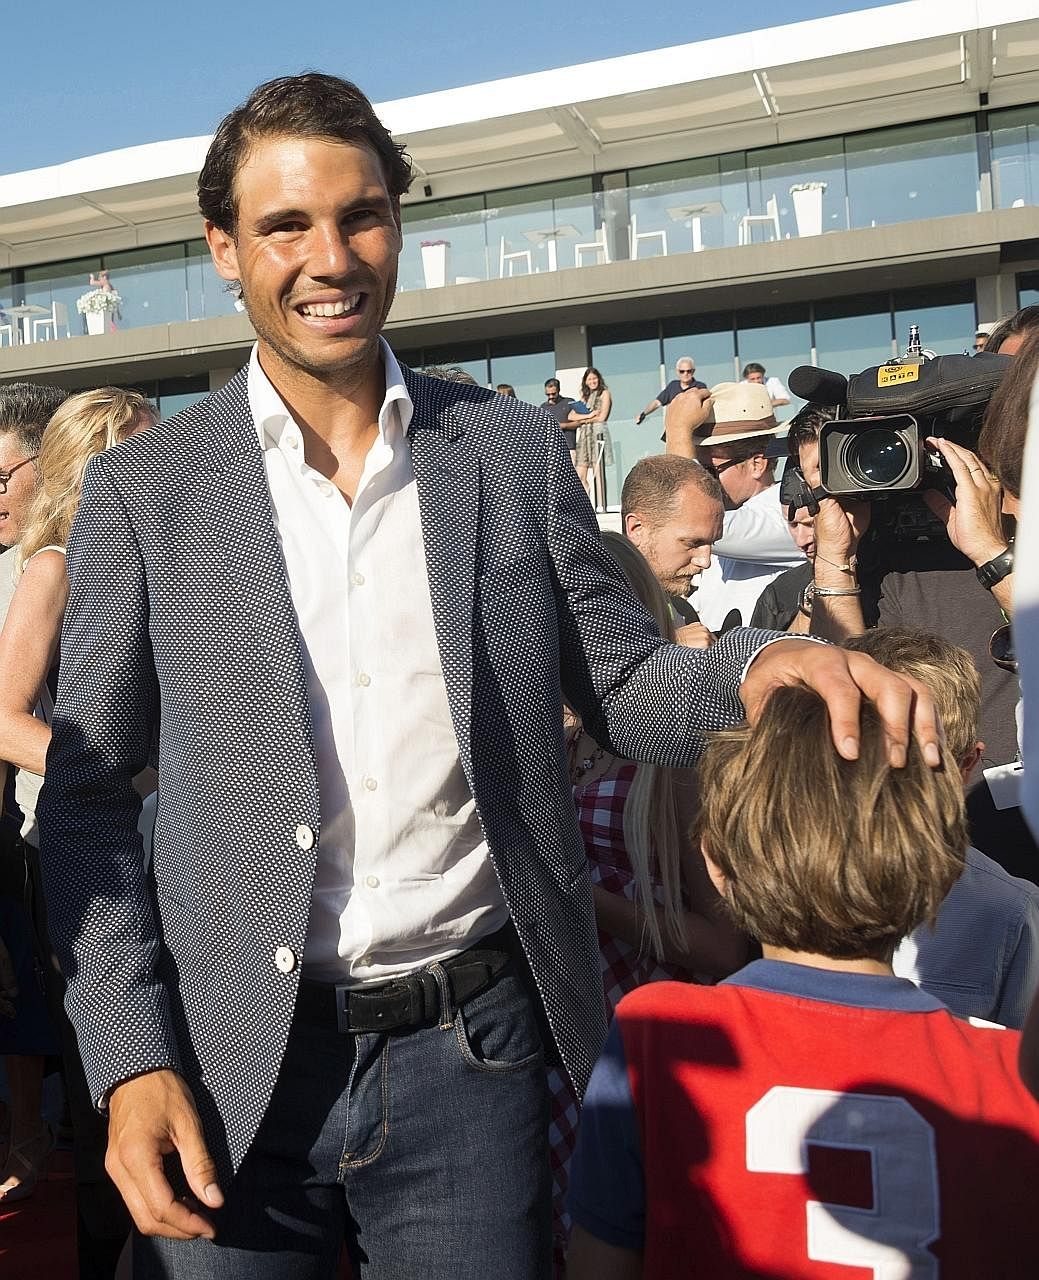 Rafael Nadal attending a graduation ceremony of pupils of the American International School of Mallorca in his tennis academy on Tuesday. The Spaniard had clinched his 10th French Open title on Sunday.